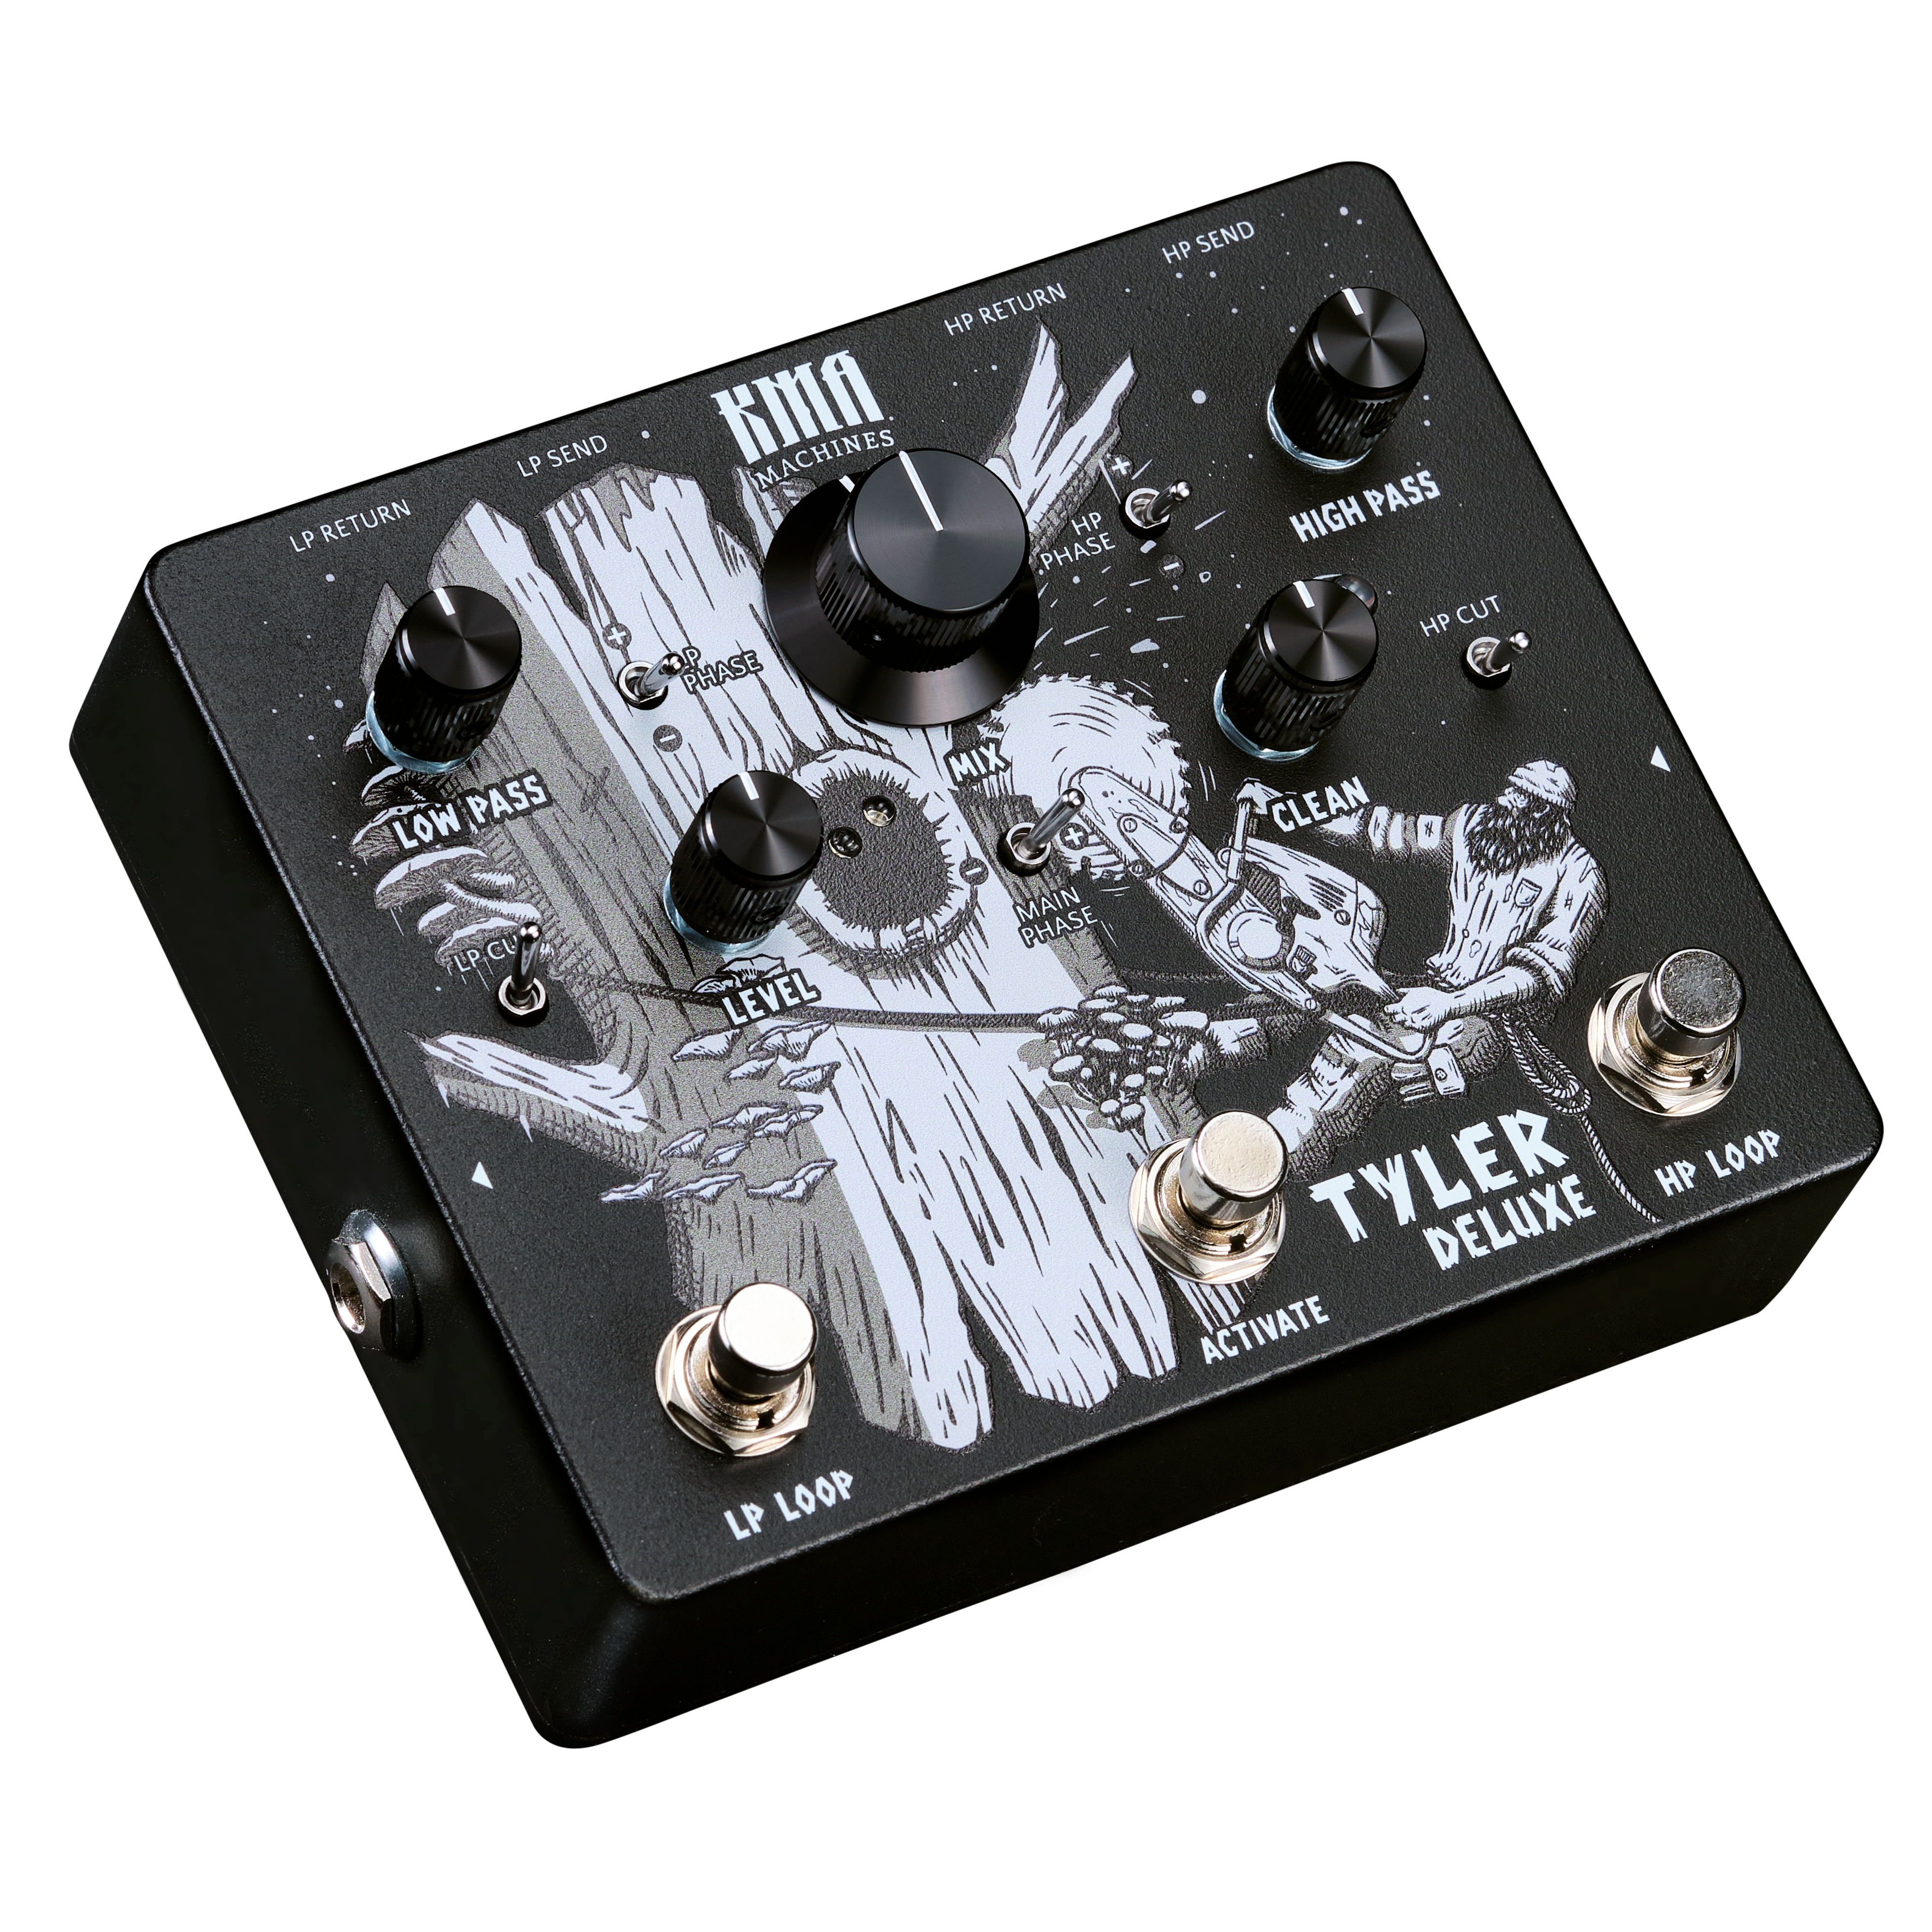 KMA Audio Machines Tyler DELUXE Two Channel Signal Splitter Pedal with Clean Blend and Phase Inversion